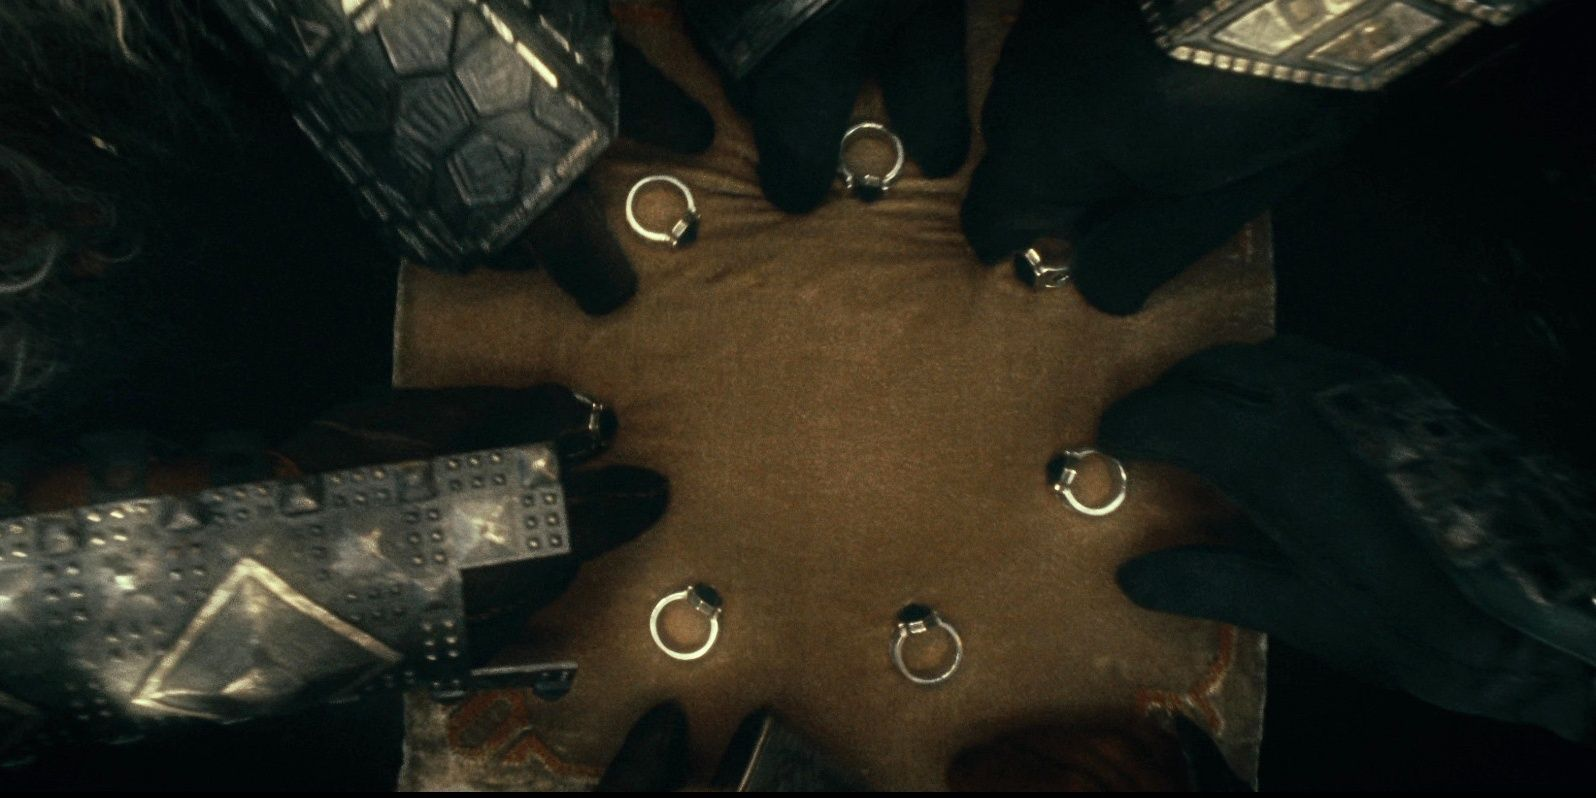 Lord Of The Rings: How Many Rings Are There And What Do They Do?